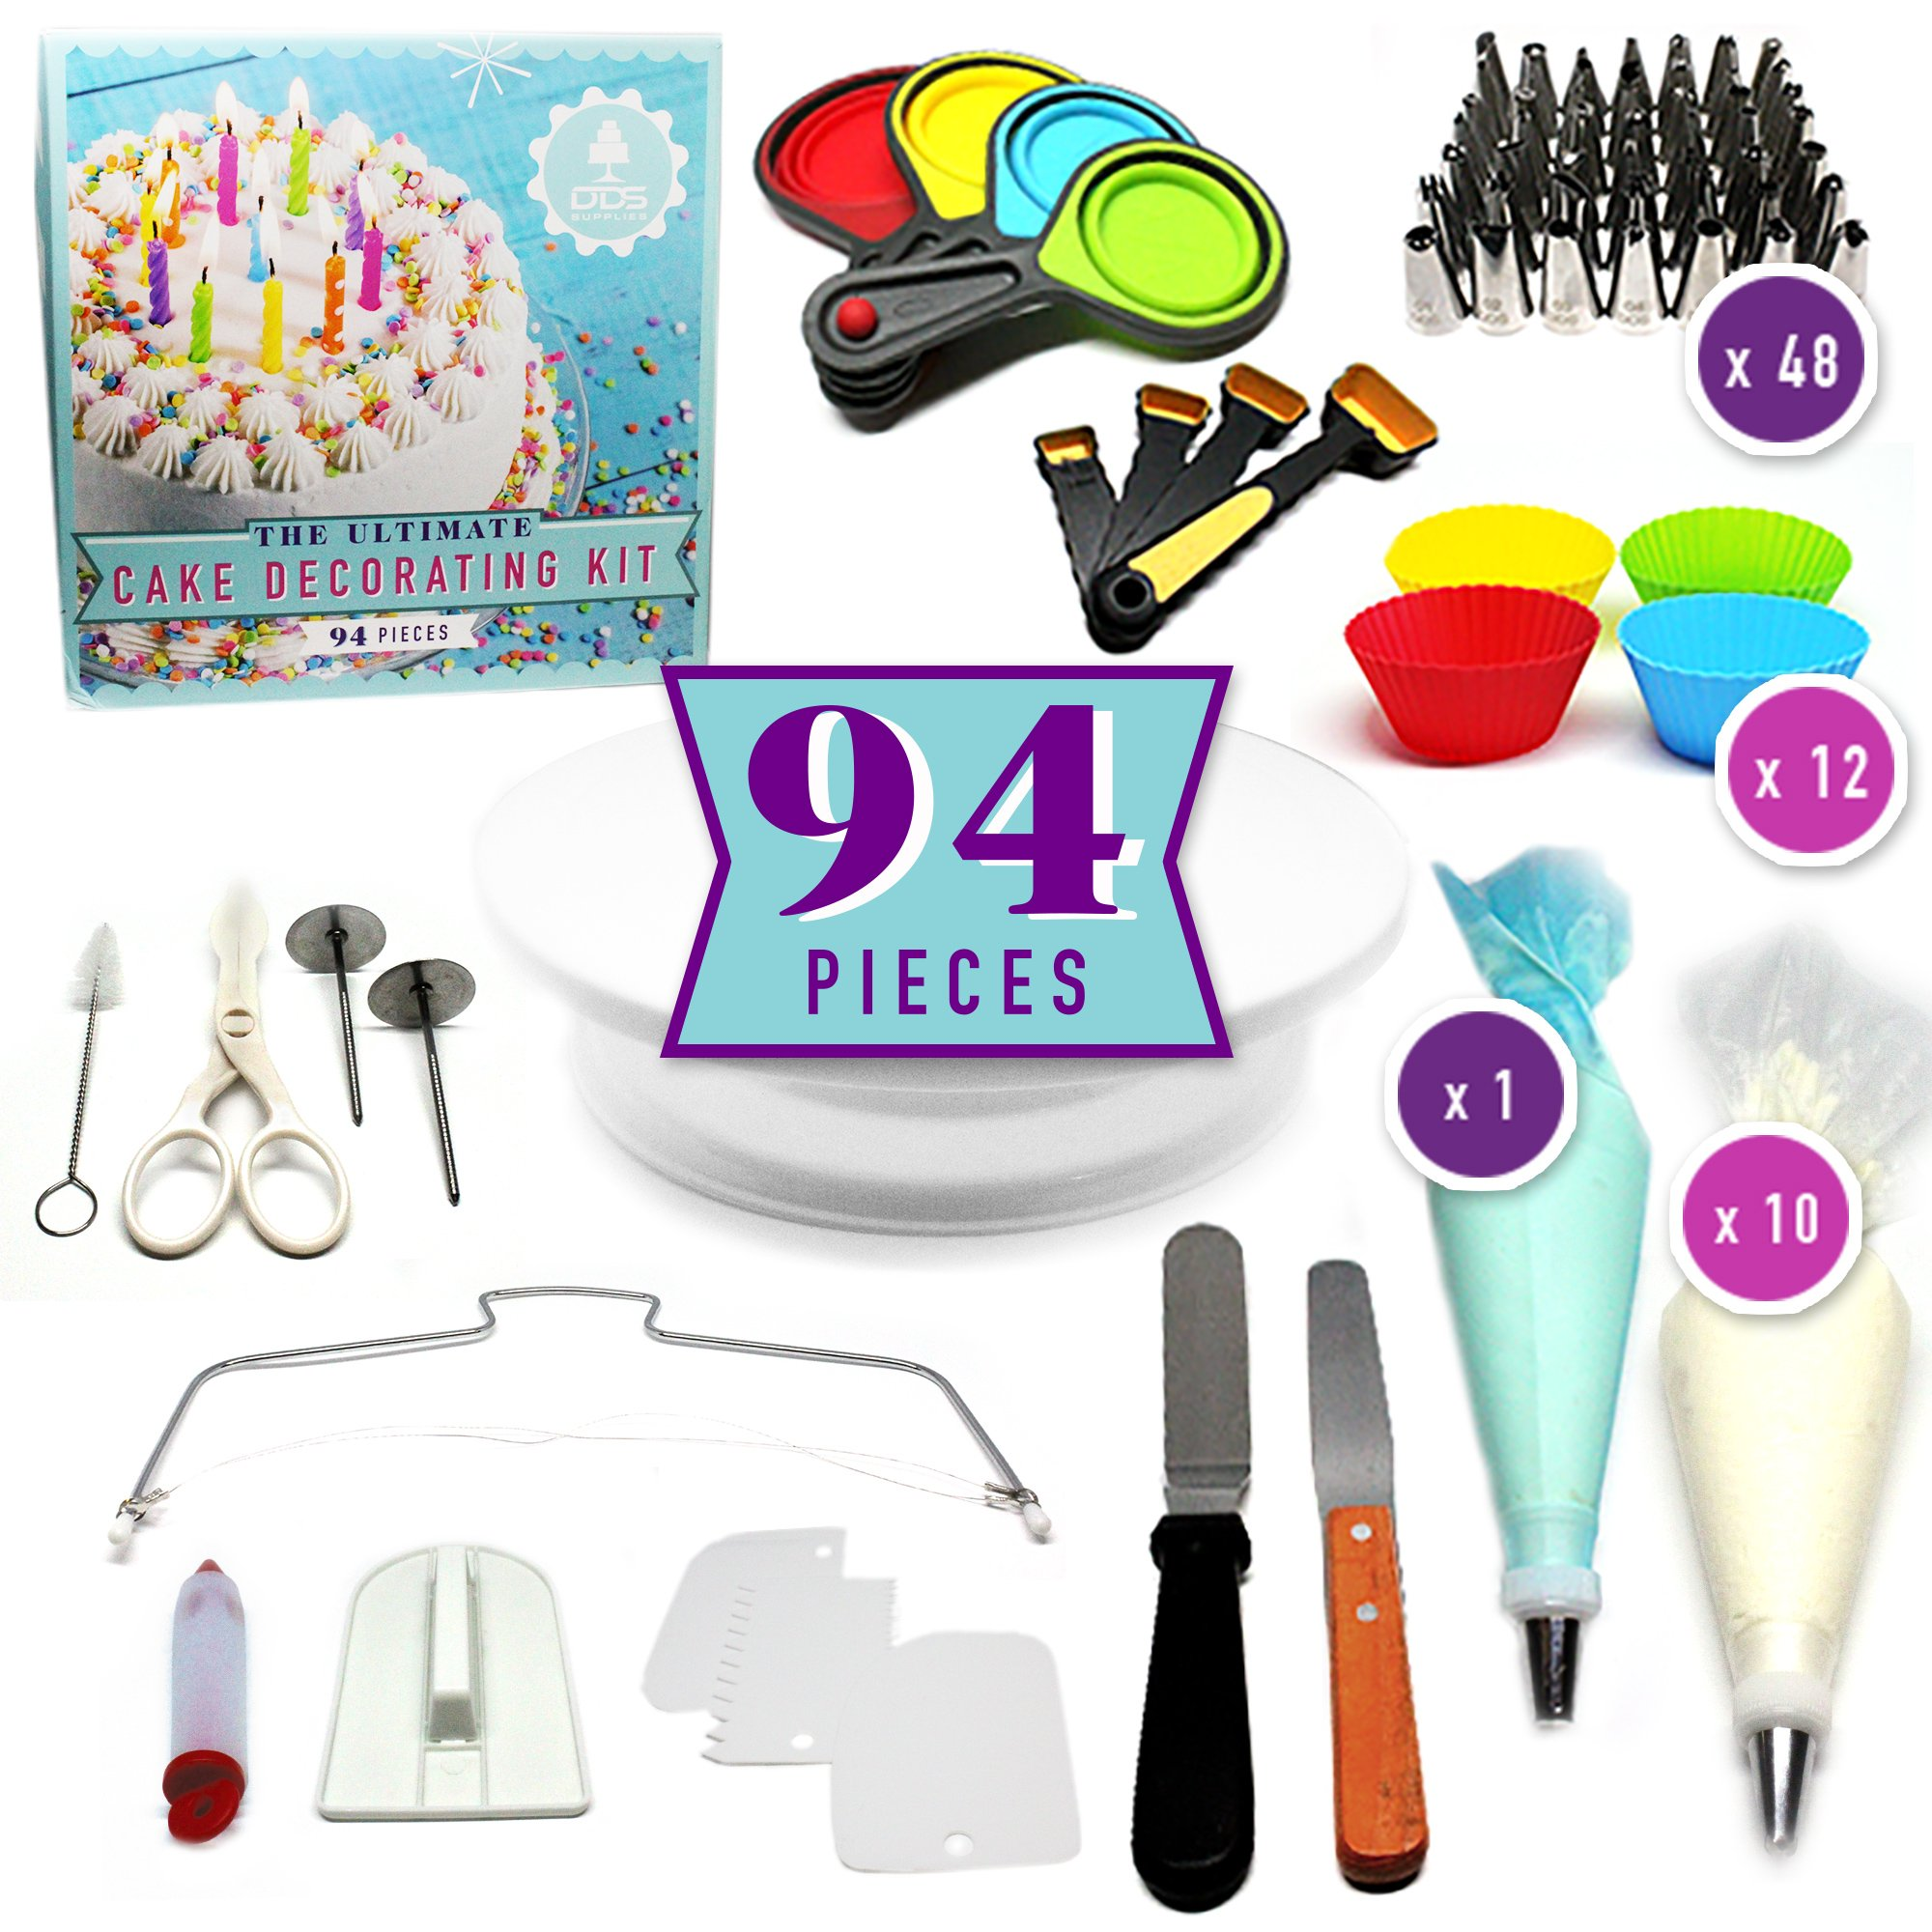 94pc Ultimate Cake Decorating Supplies Kit, Rotating Cake Decorating Turntable, 48 Piping Tips, Piping Bags, Pastry Bags, Cupcake Molds, Icing Smoother, Pastry Tools, Decorating Tools